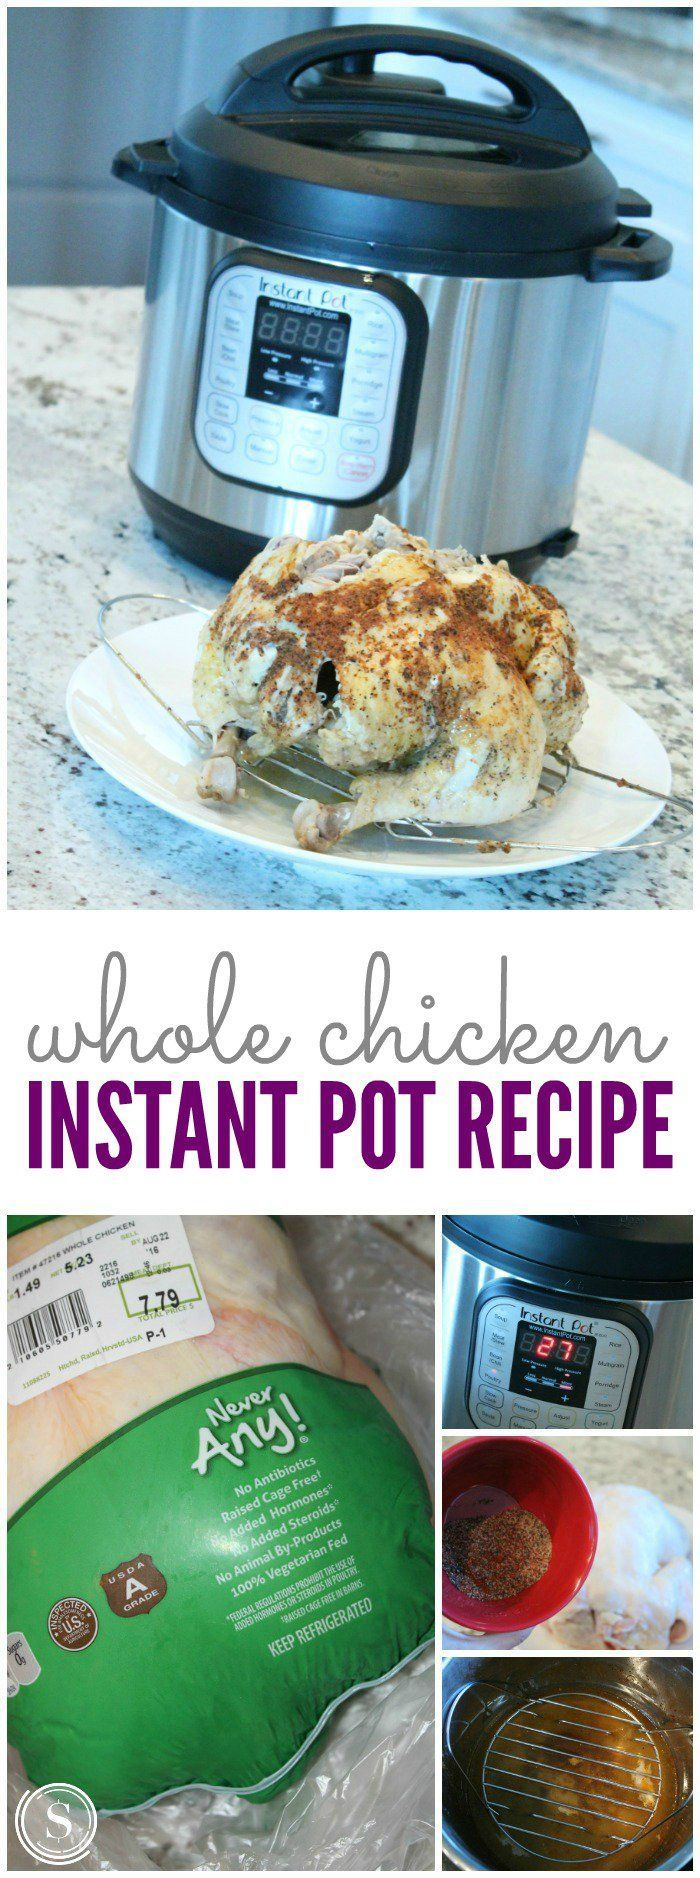 Instant Pot Whole Chicken Recipe! This is a great way to prepare your meat for your freezer cooking or crockpot meals!